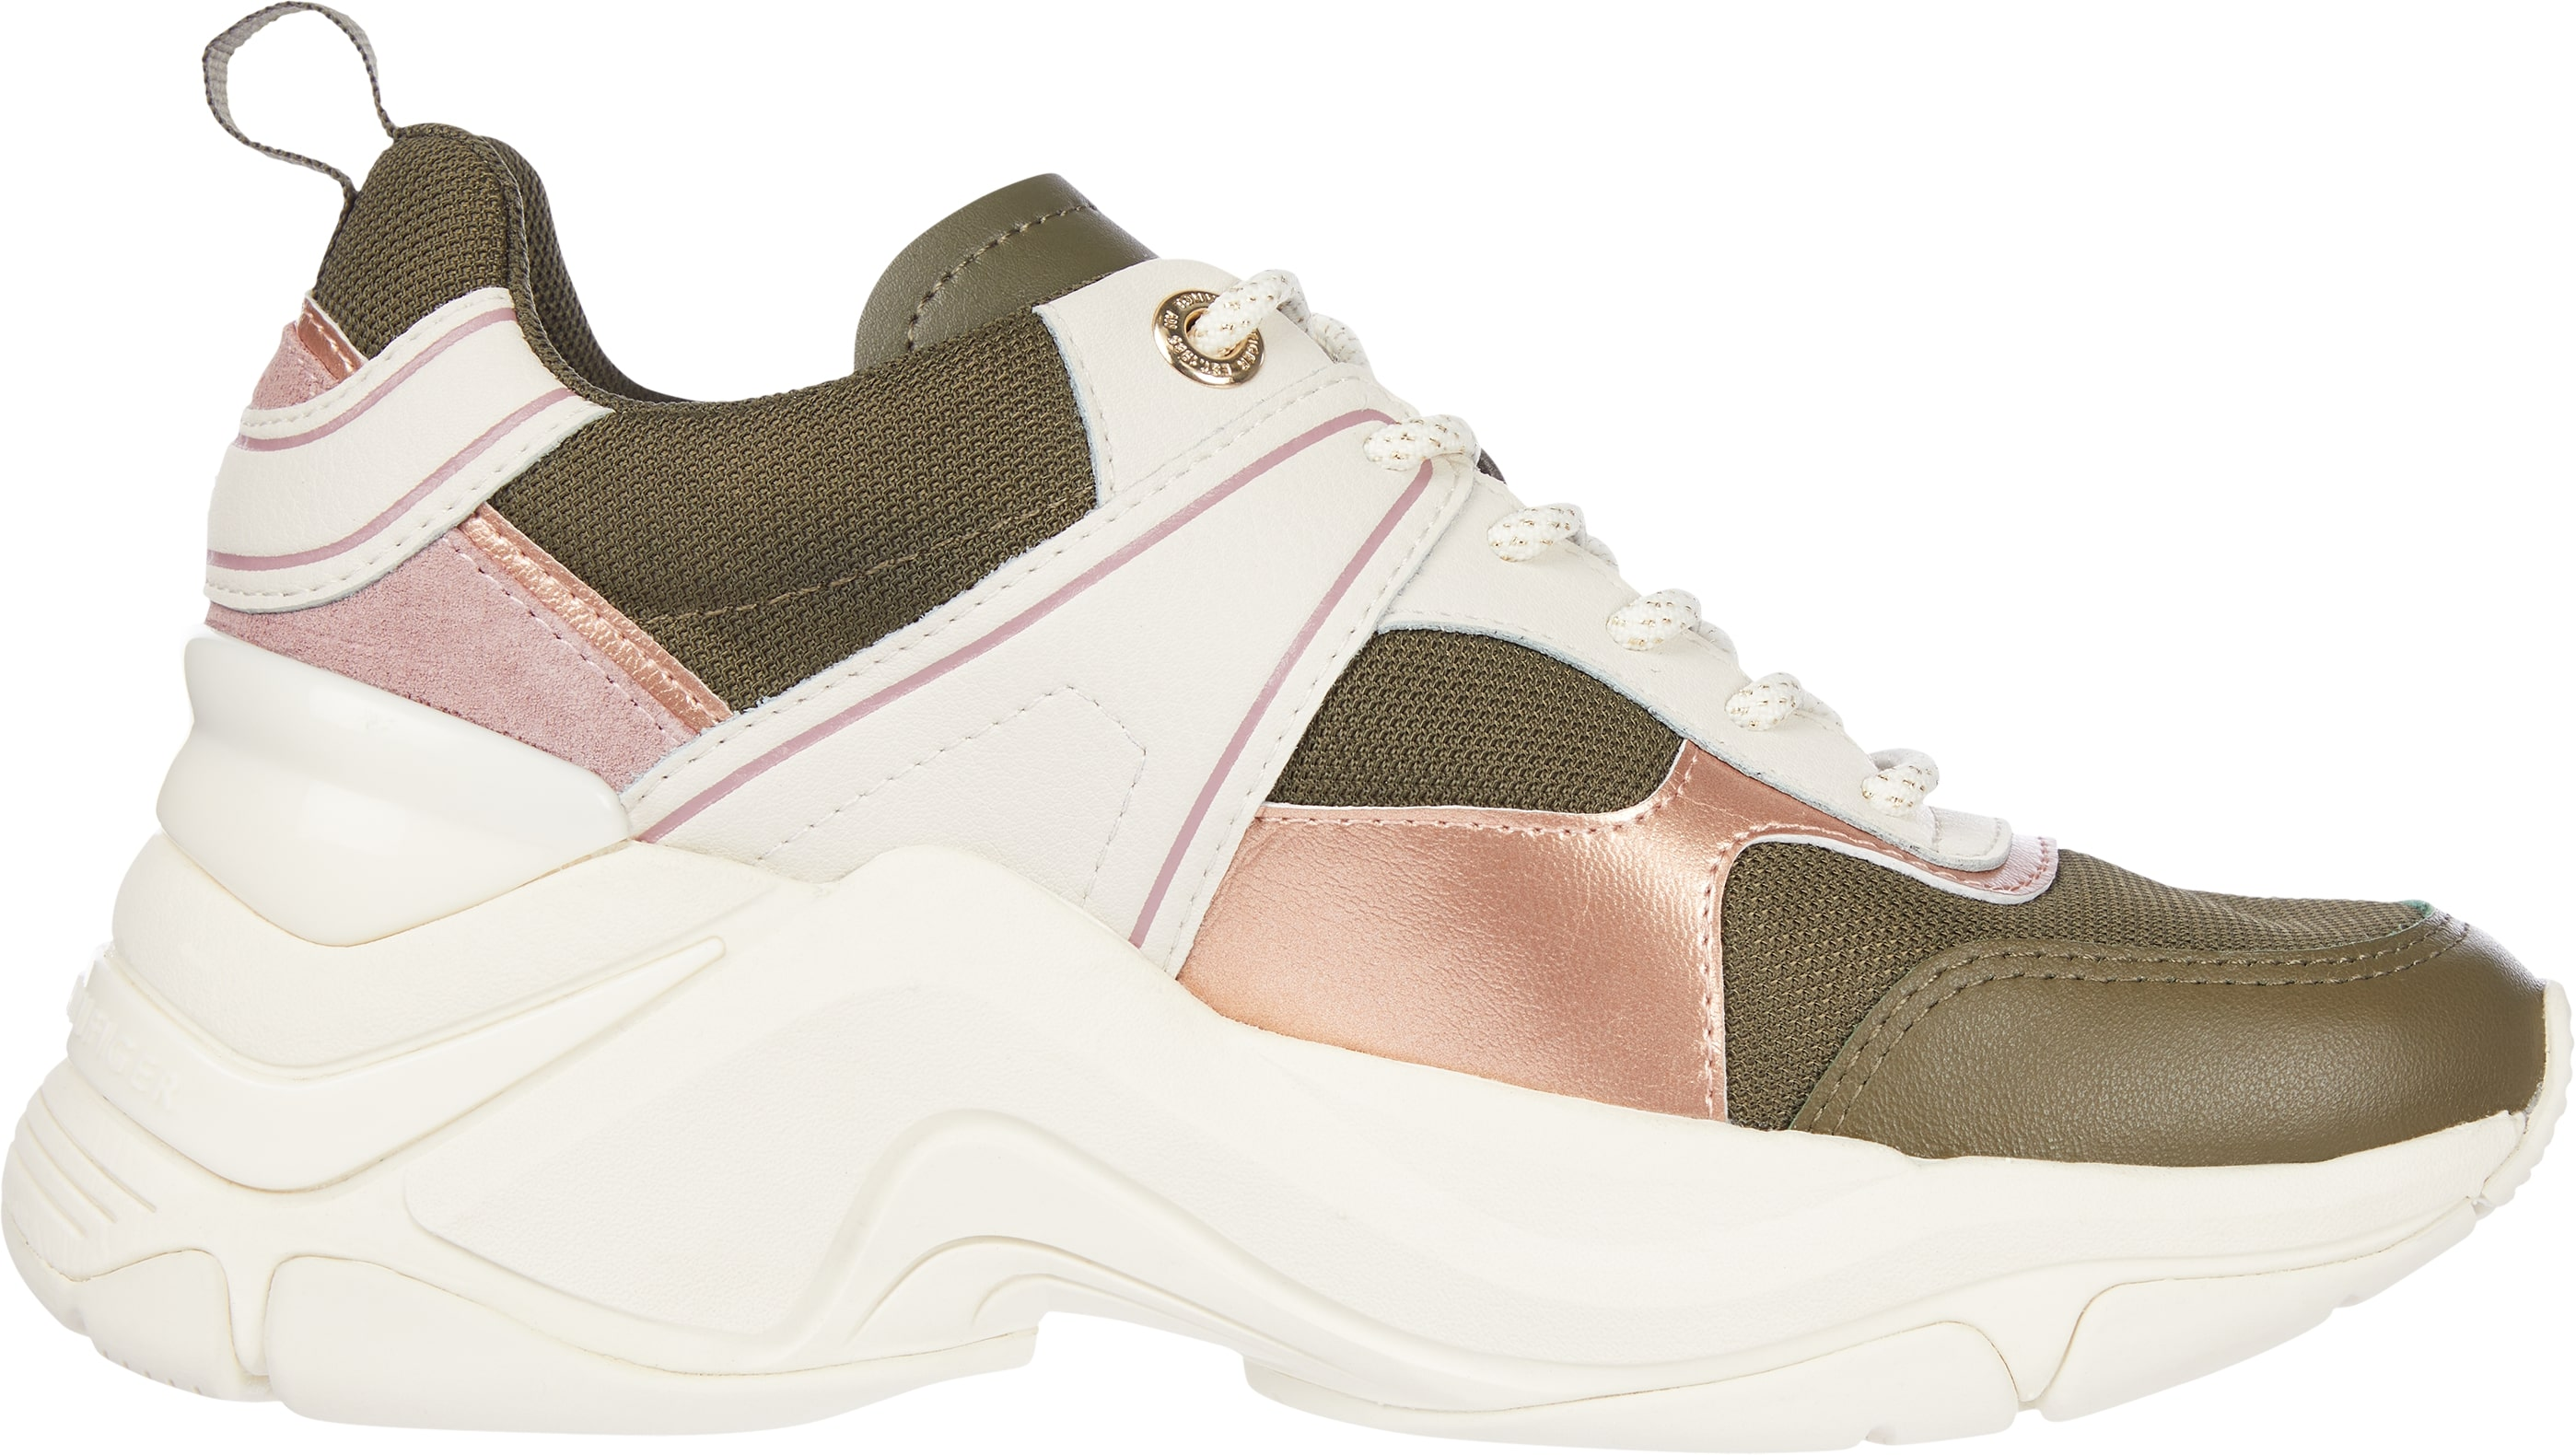 Tommy Hilfiger Fashion Wedge sneakers, army green, 39